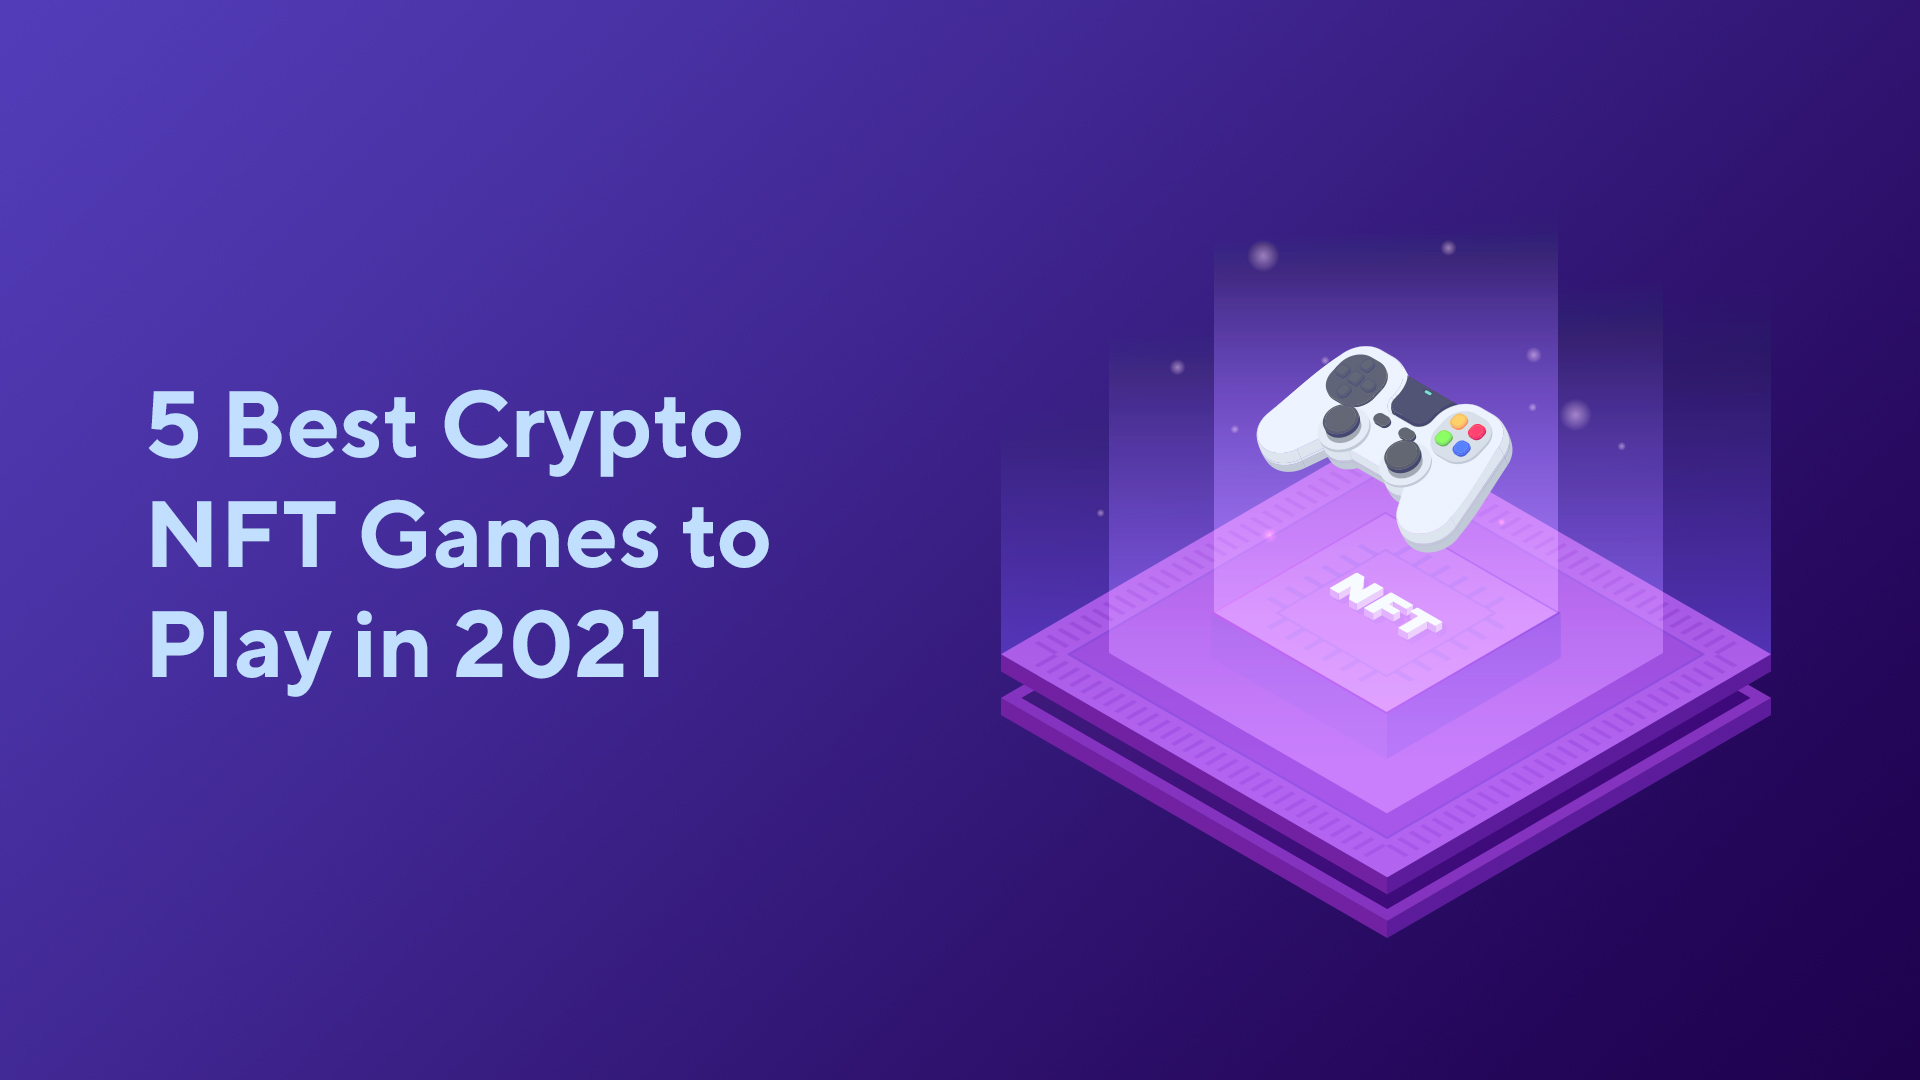 5 Best Crypto NFT Games to Play in 2021